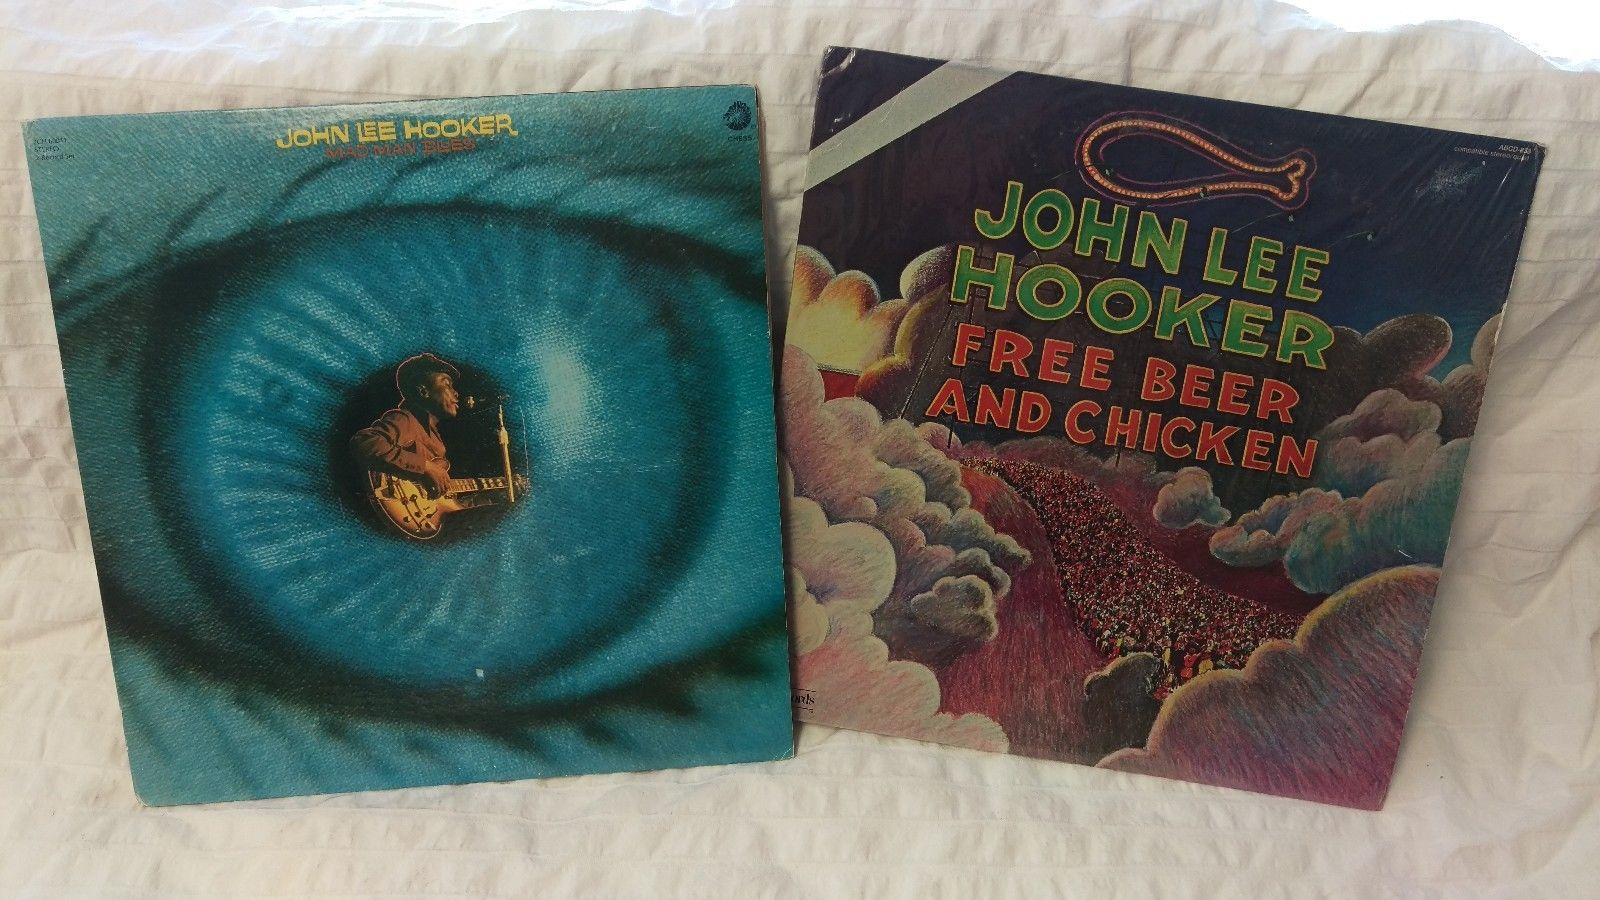 John Lee Hooker Mad Man Blues Promo Copy and Free Beer and Chicken Vinyl Records